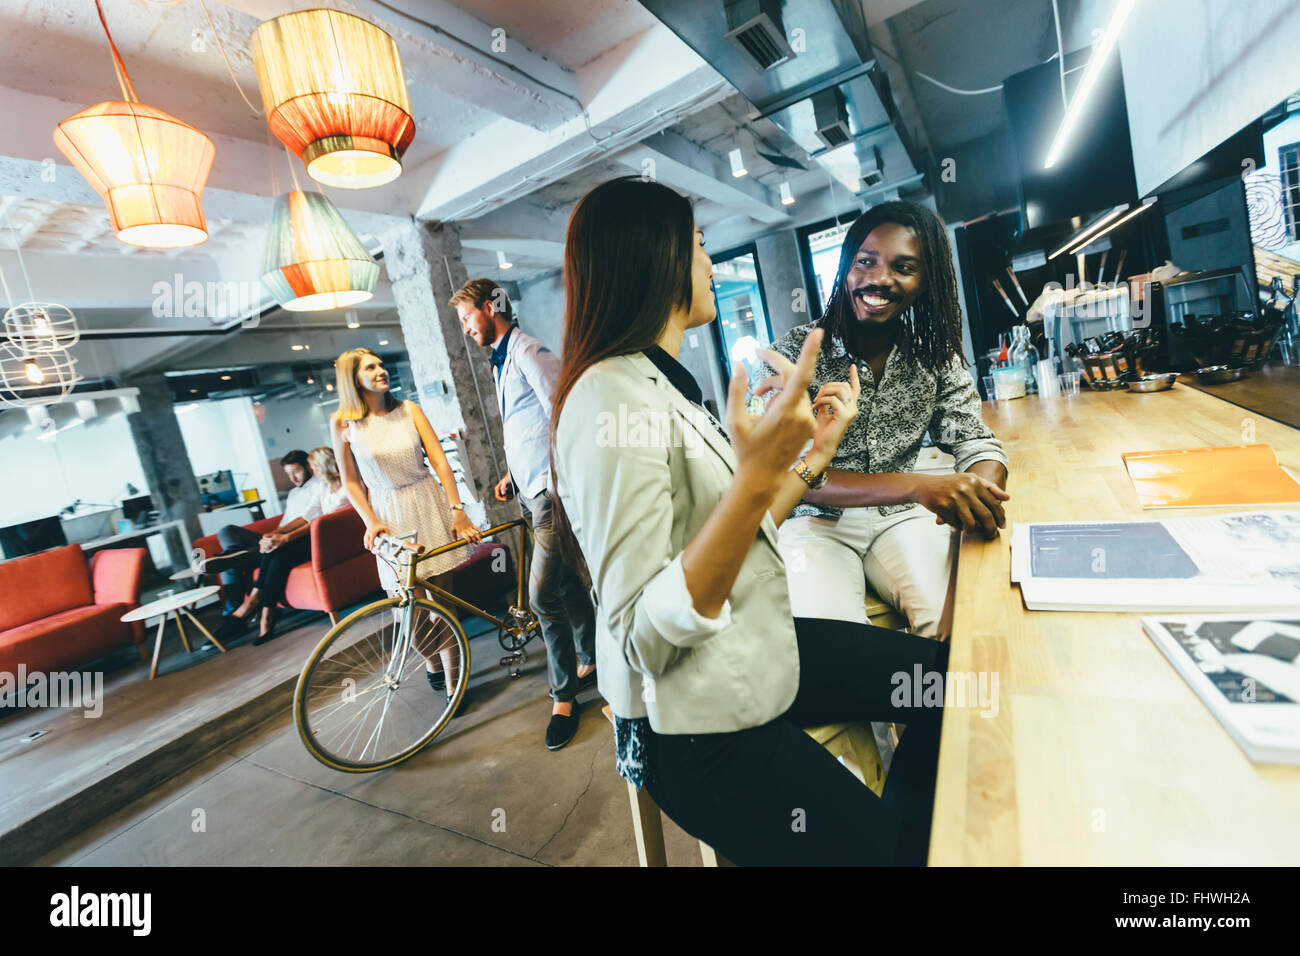 Modern cafe, dynamic life, people and diversity - Stock Image